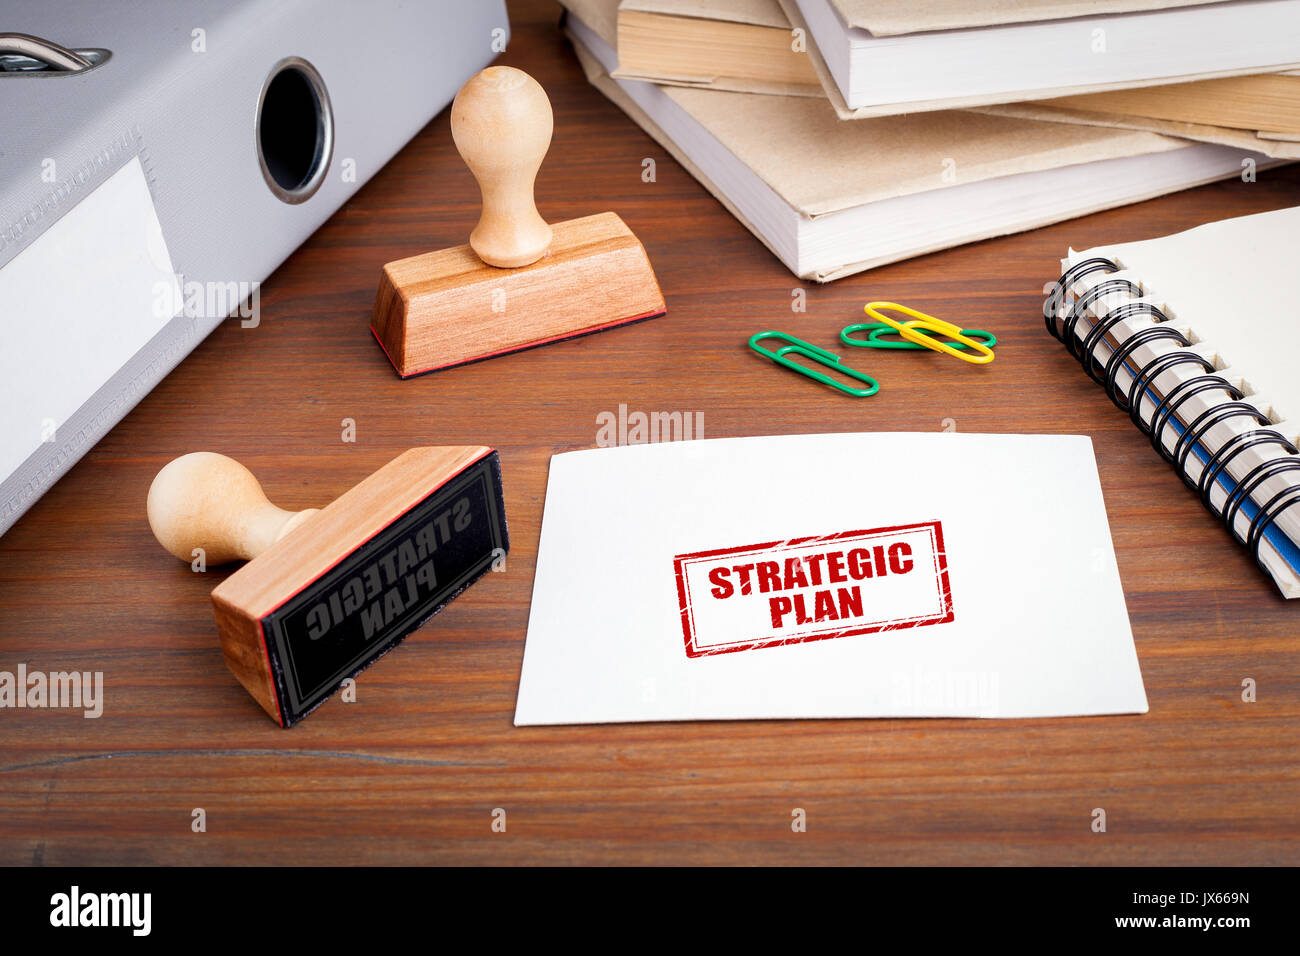 Strategic Plan. Rubber Stamp on desk in the Office. - Stock Image